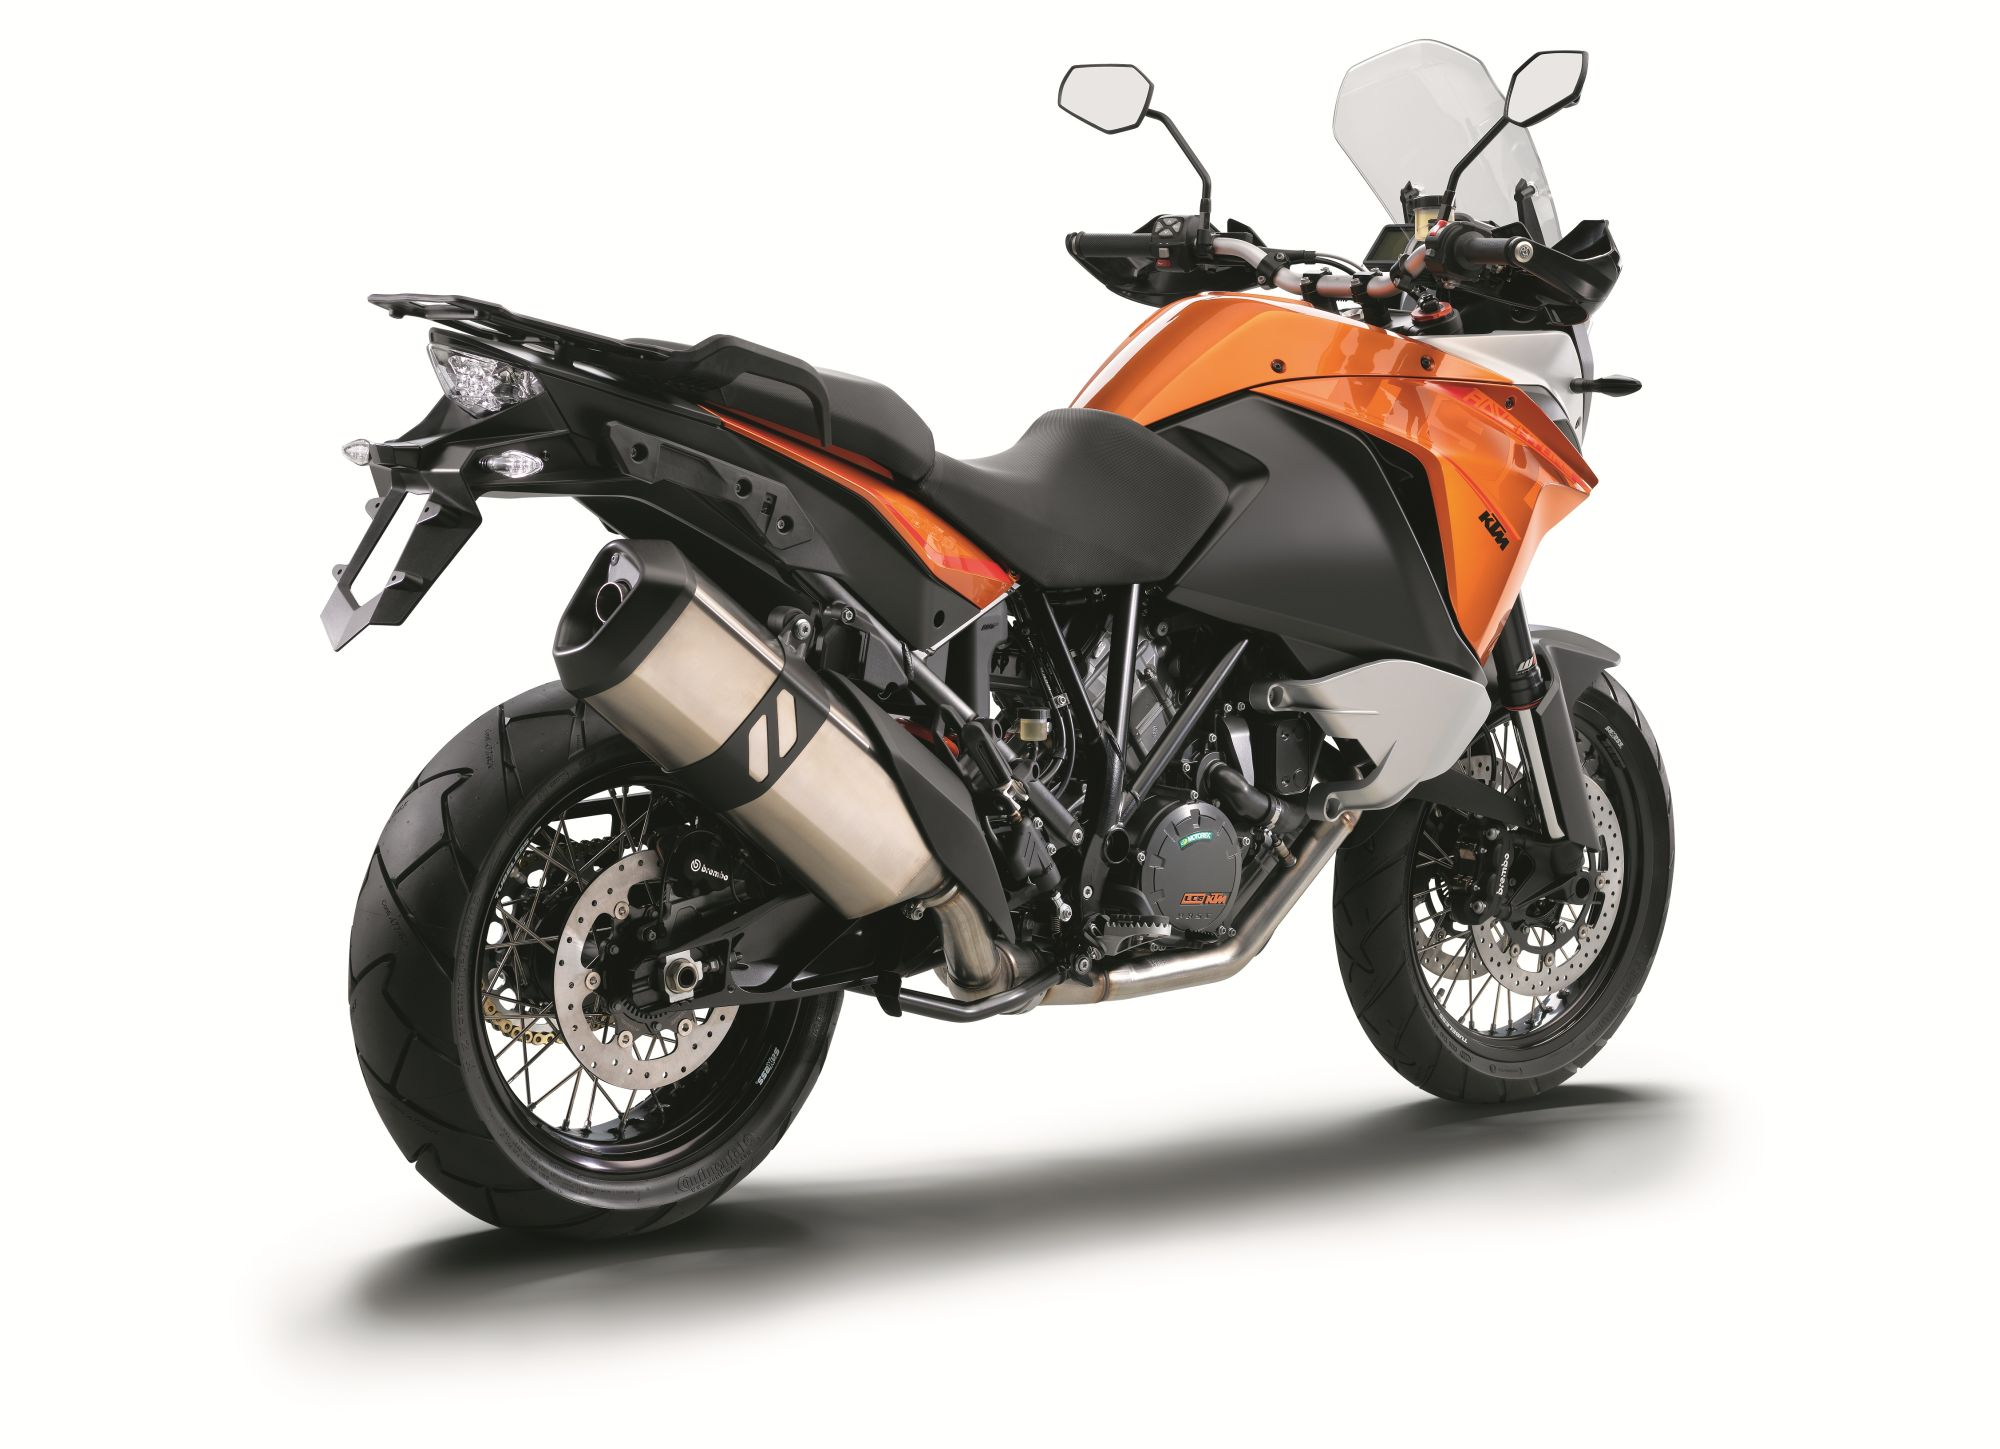 ktm 1190 adventure bilder und technische daten. Black Bedroom Furniture Sets. Home Design Ideas